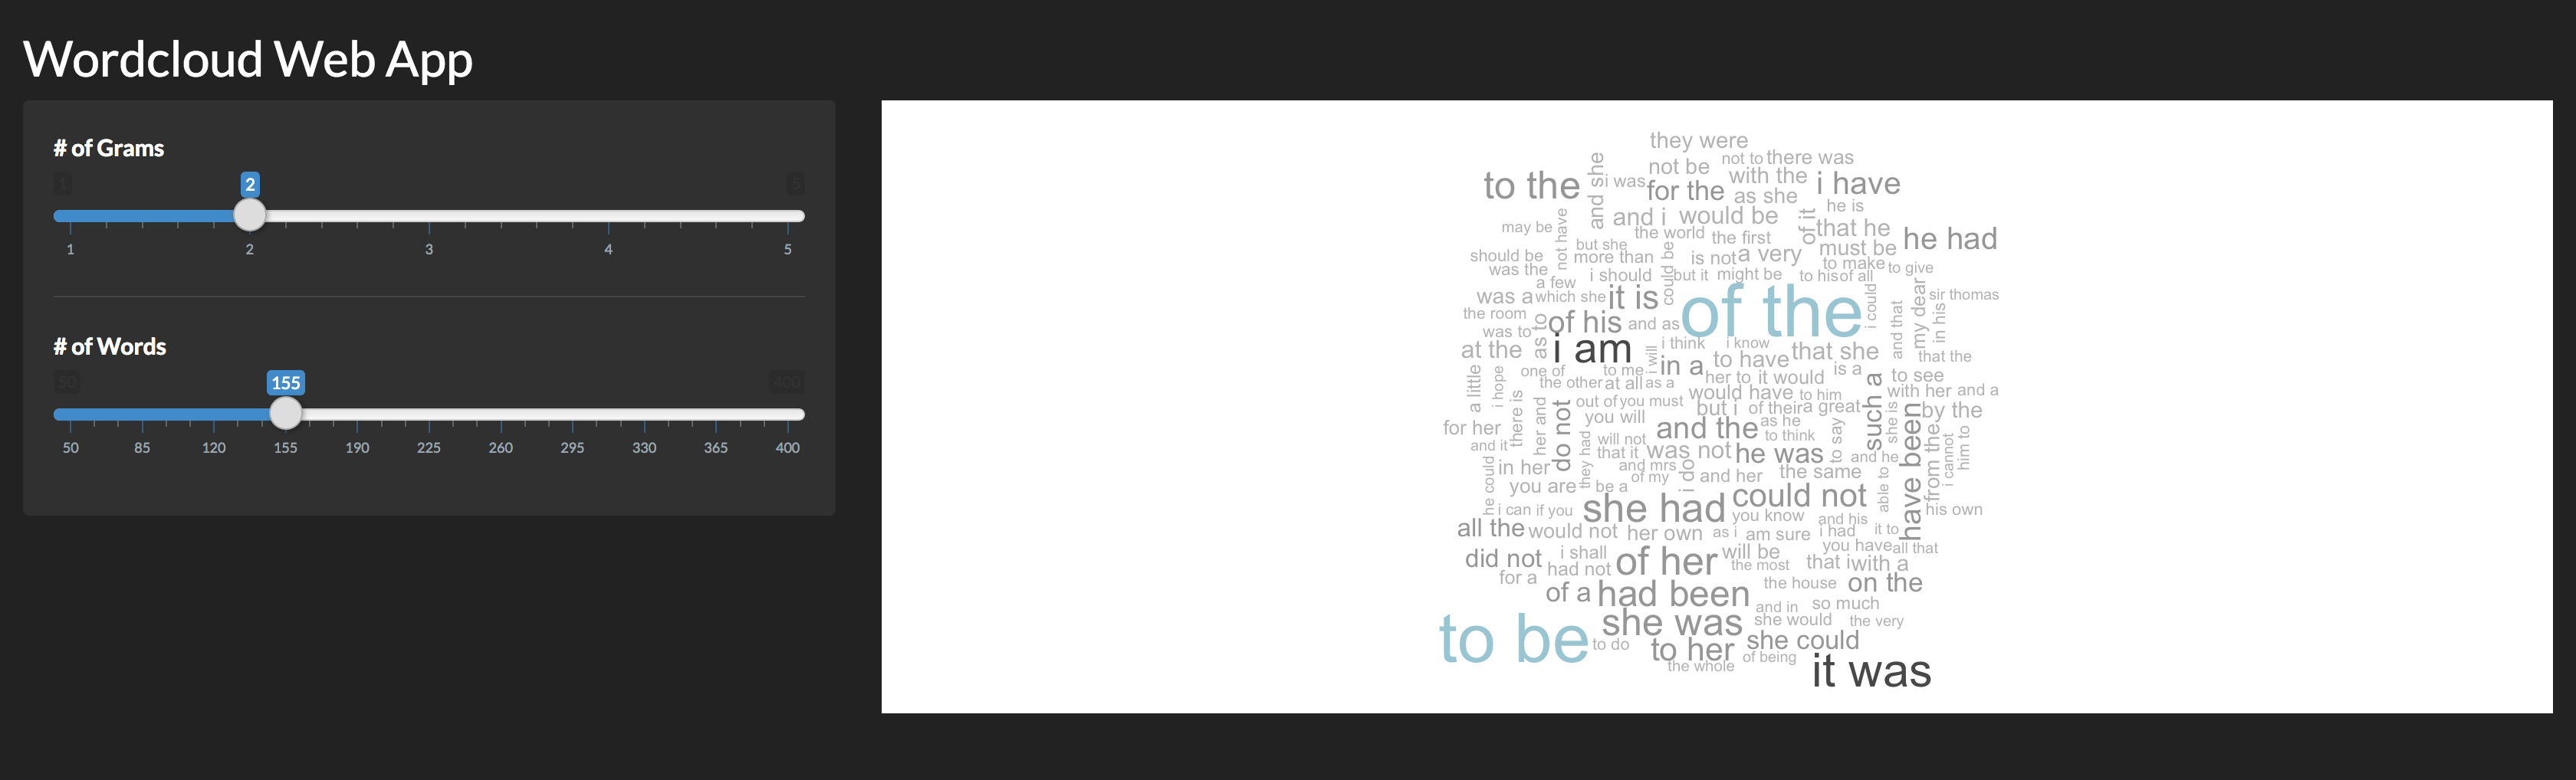 Wordcloud Web App In 40 Lines of R - Towards Data Science